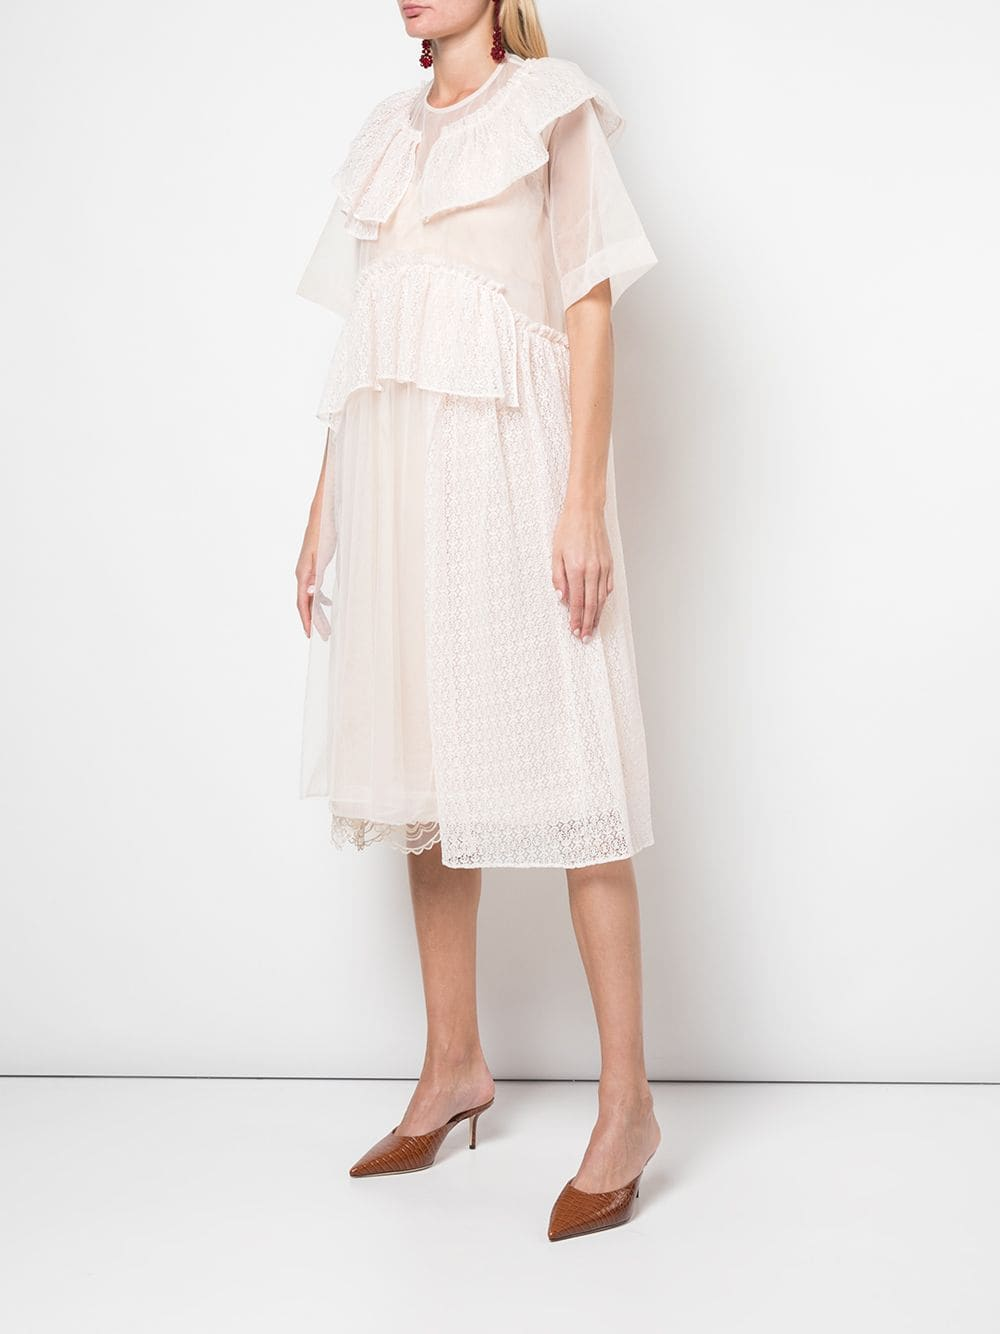 SIMONE ROCHA WOMEN FRILL TIERS DRESS